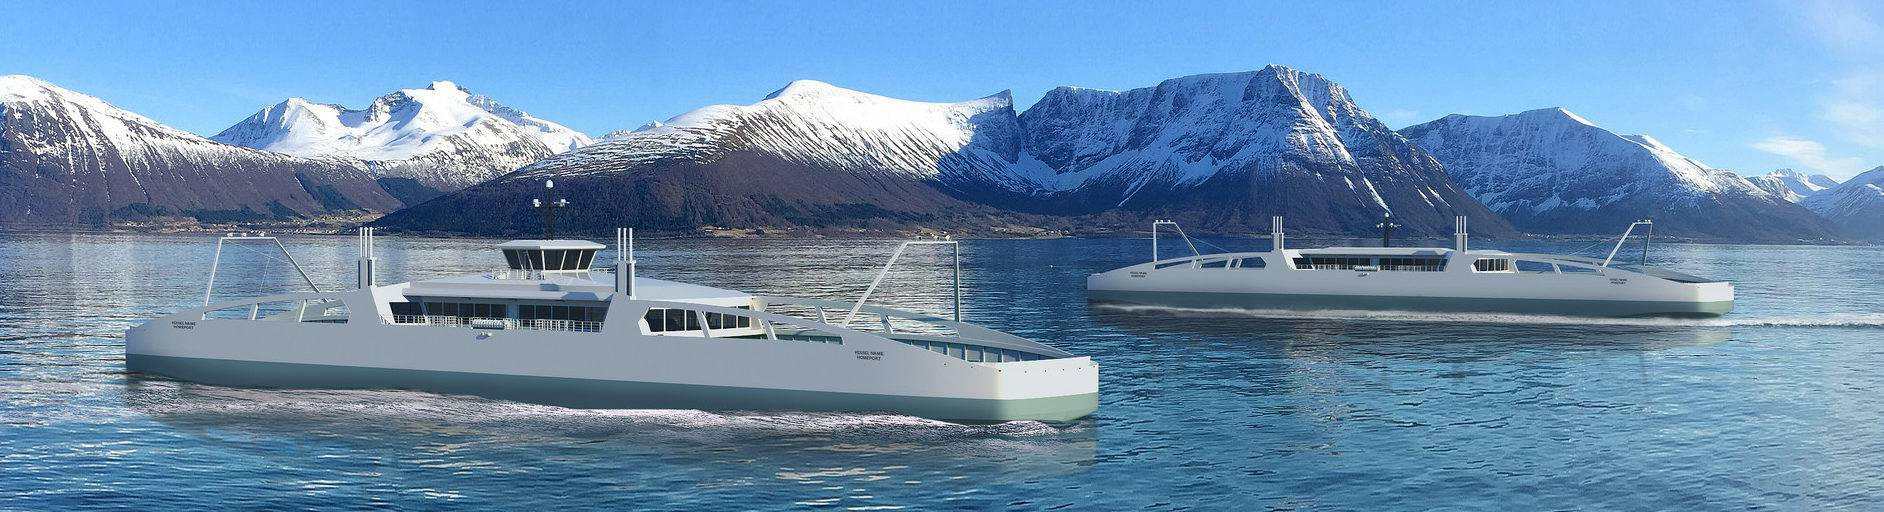 Ghost Ships IRL: How Will Autonomous Cargo Boats Change